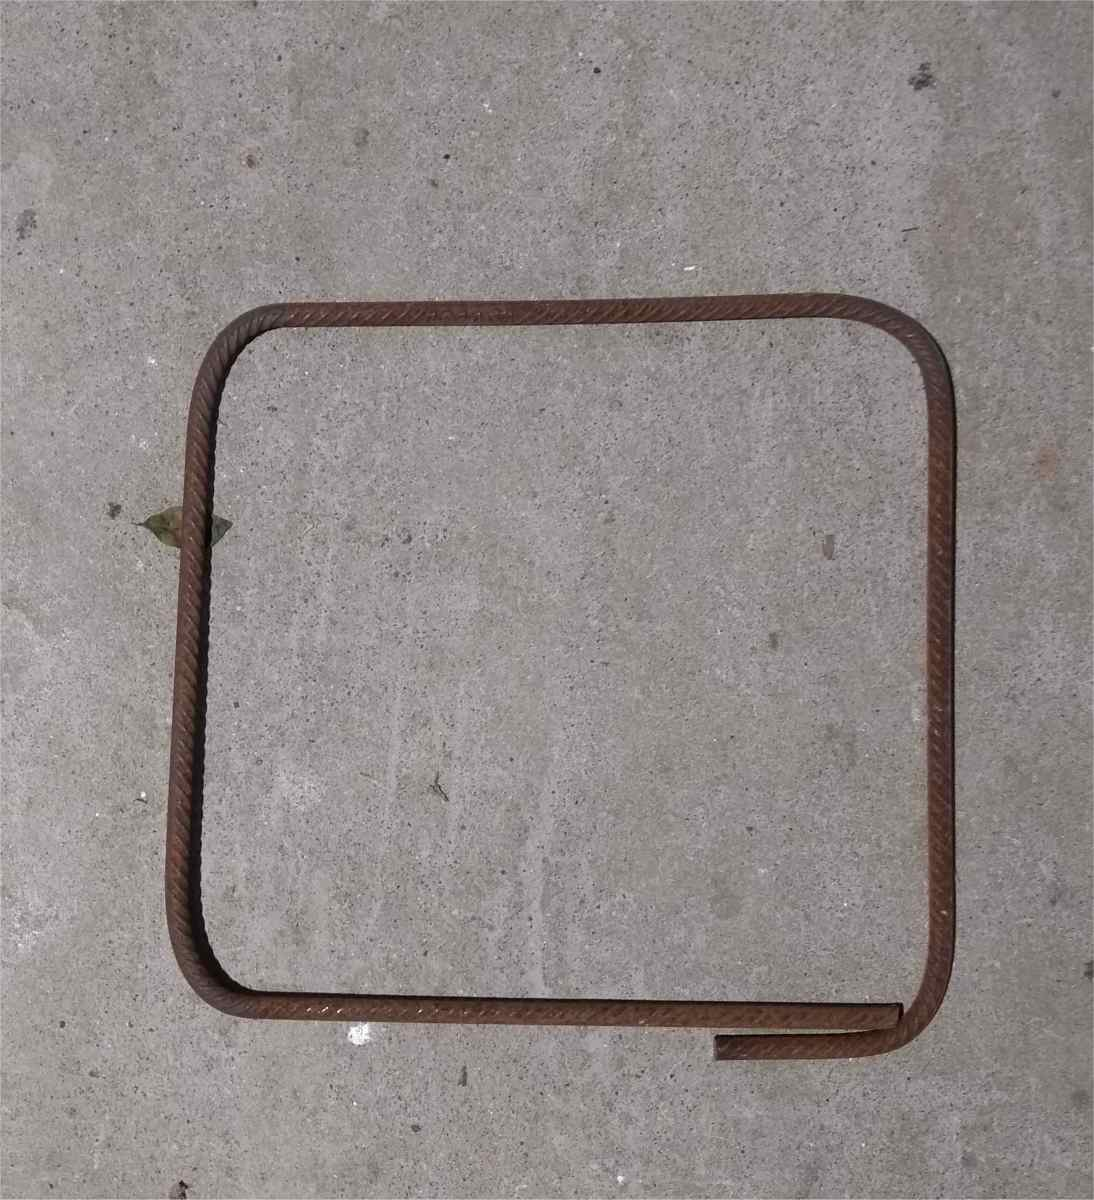 """Square ring or """"stirrup"""" made from rebar."""